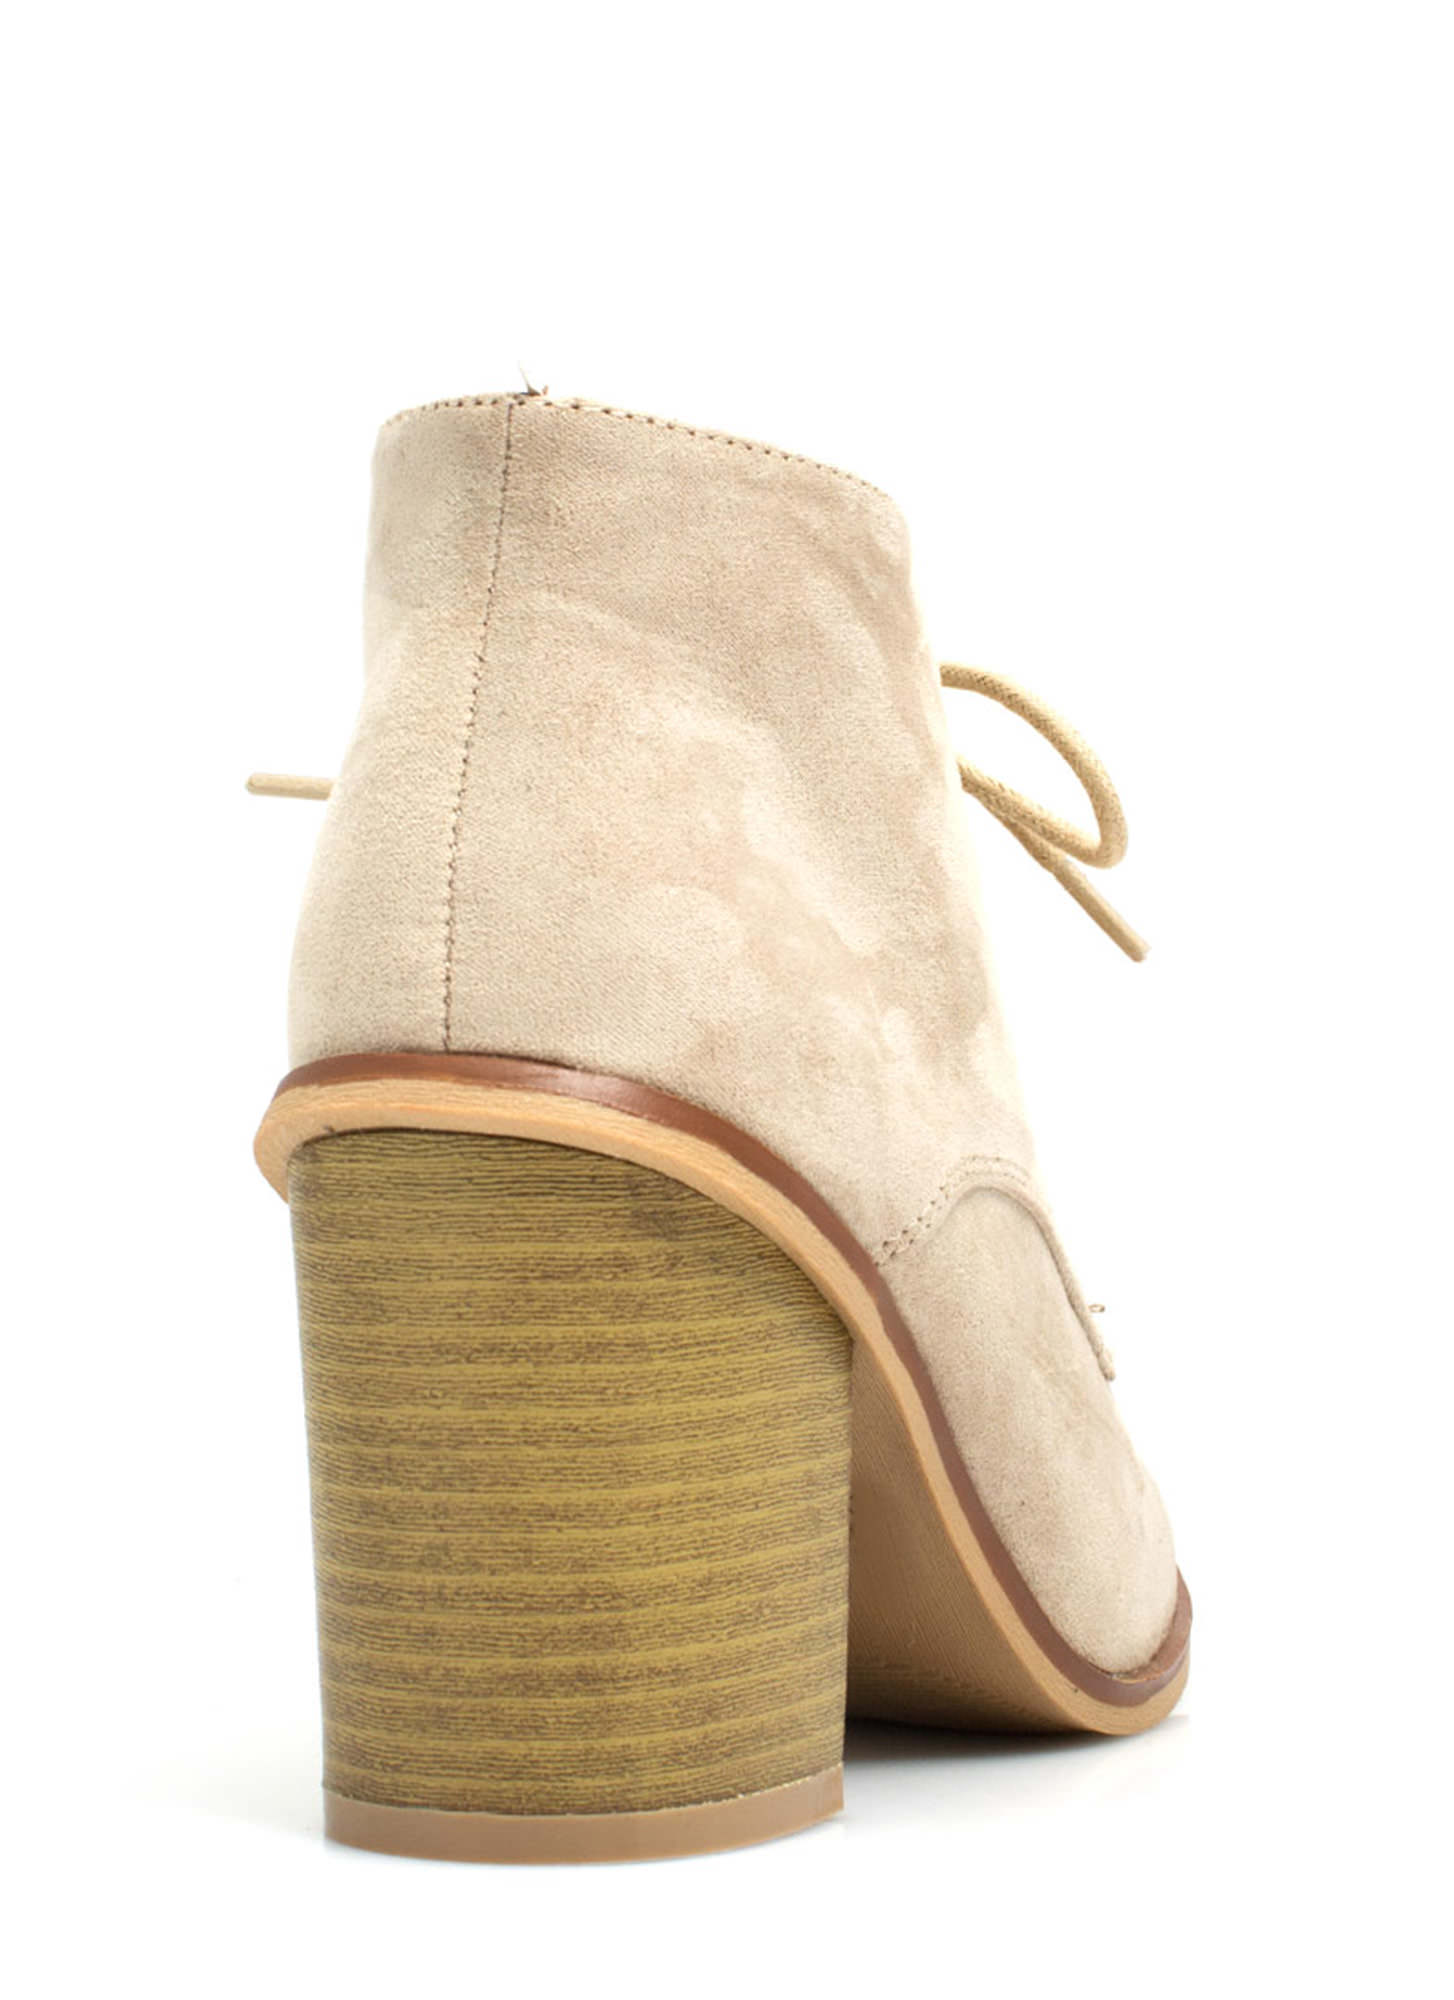 Get Laced Faux Suede Booties TAUPE (Final Sale)